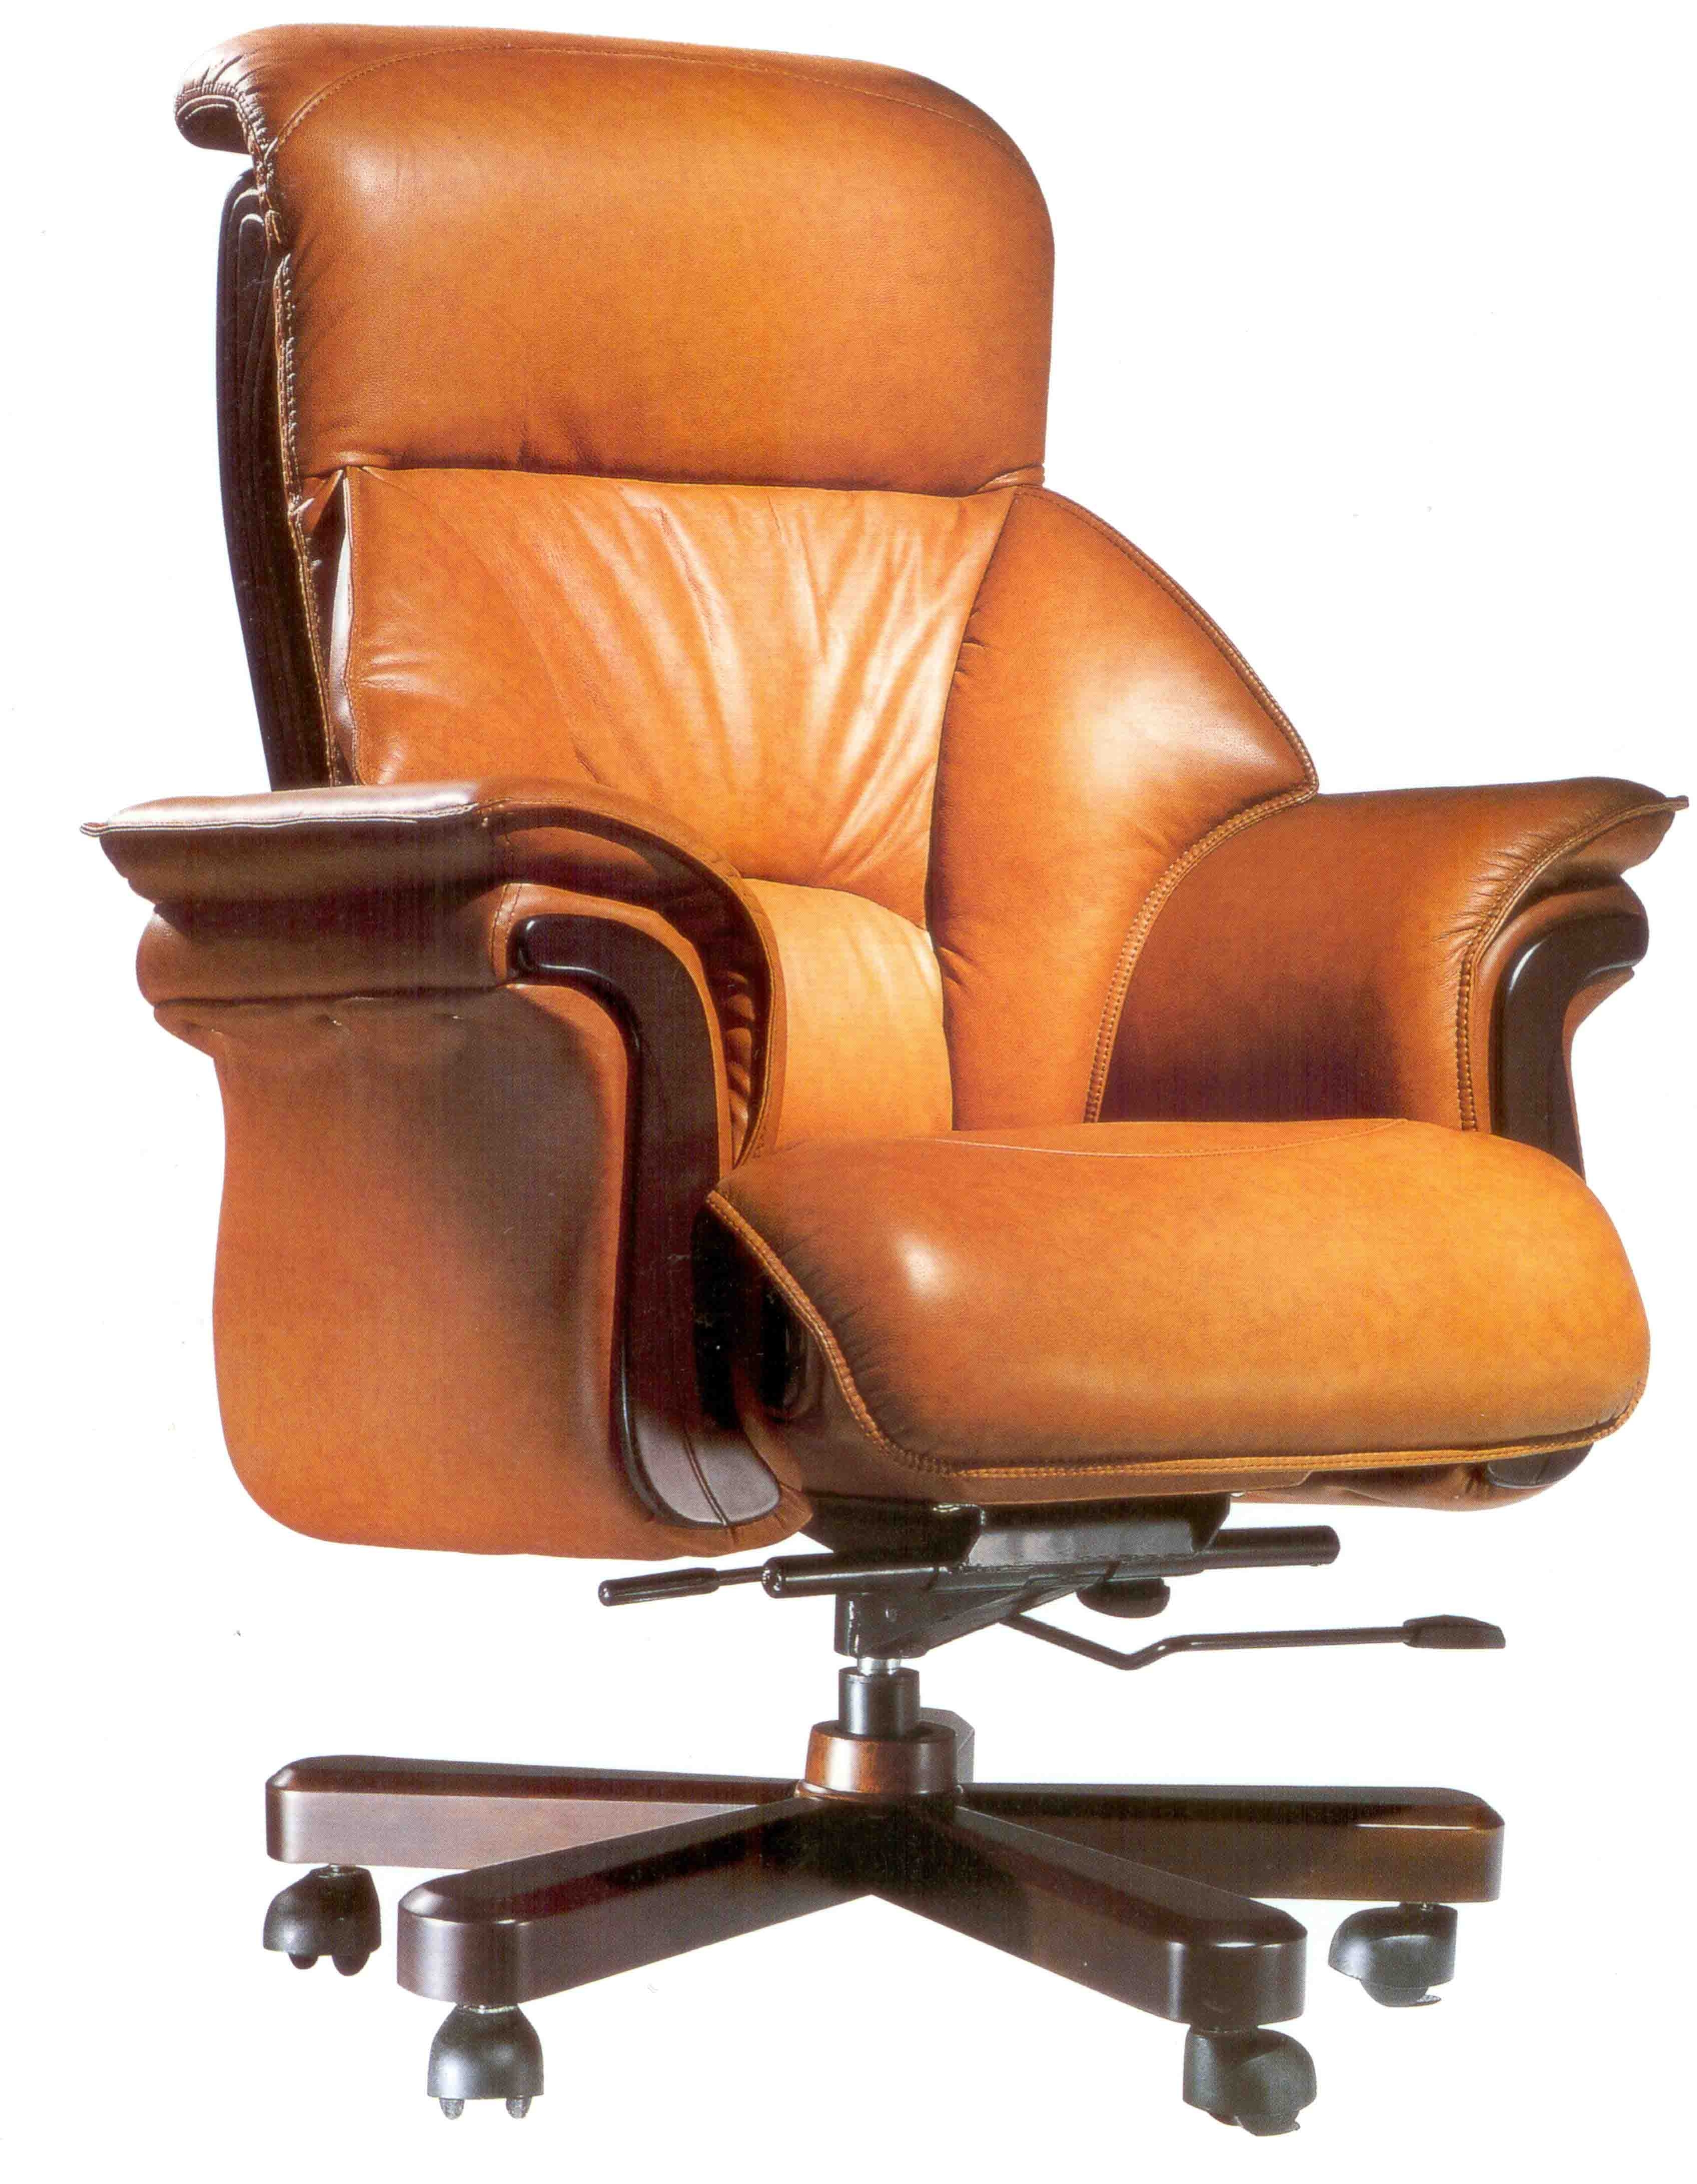 Awesome Leather Desk Chairs Contemporary – Liltigertoo Regarding Popular Executive Office Armchairs (View 1 of 20)